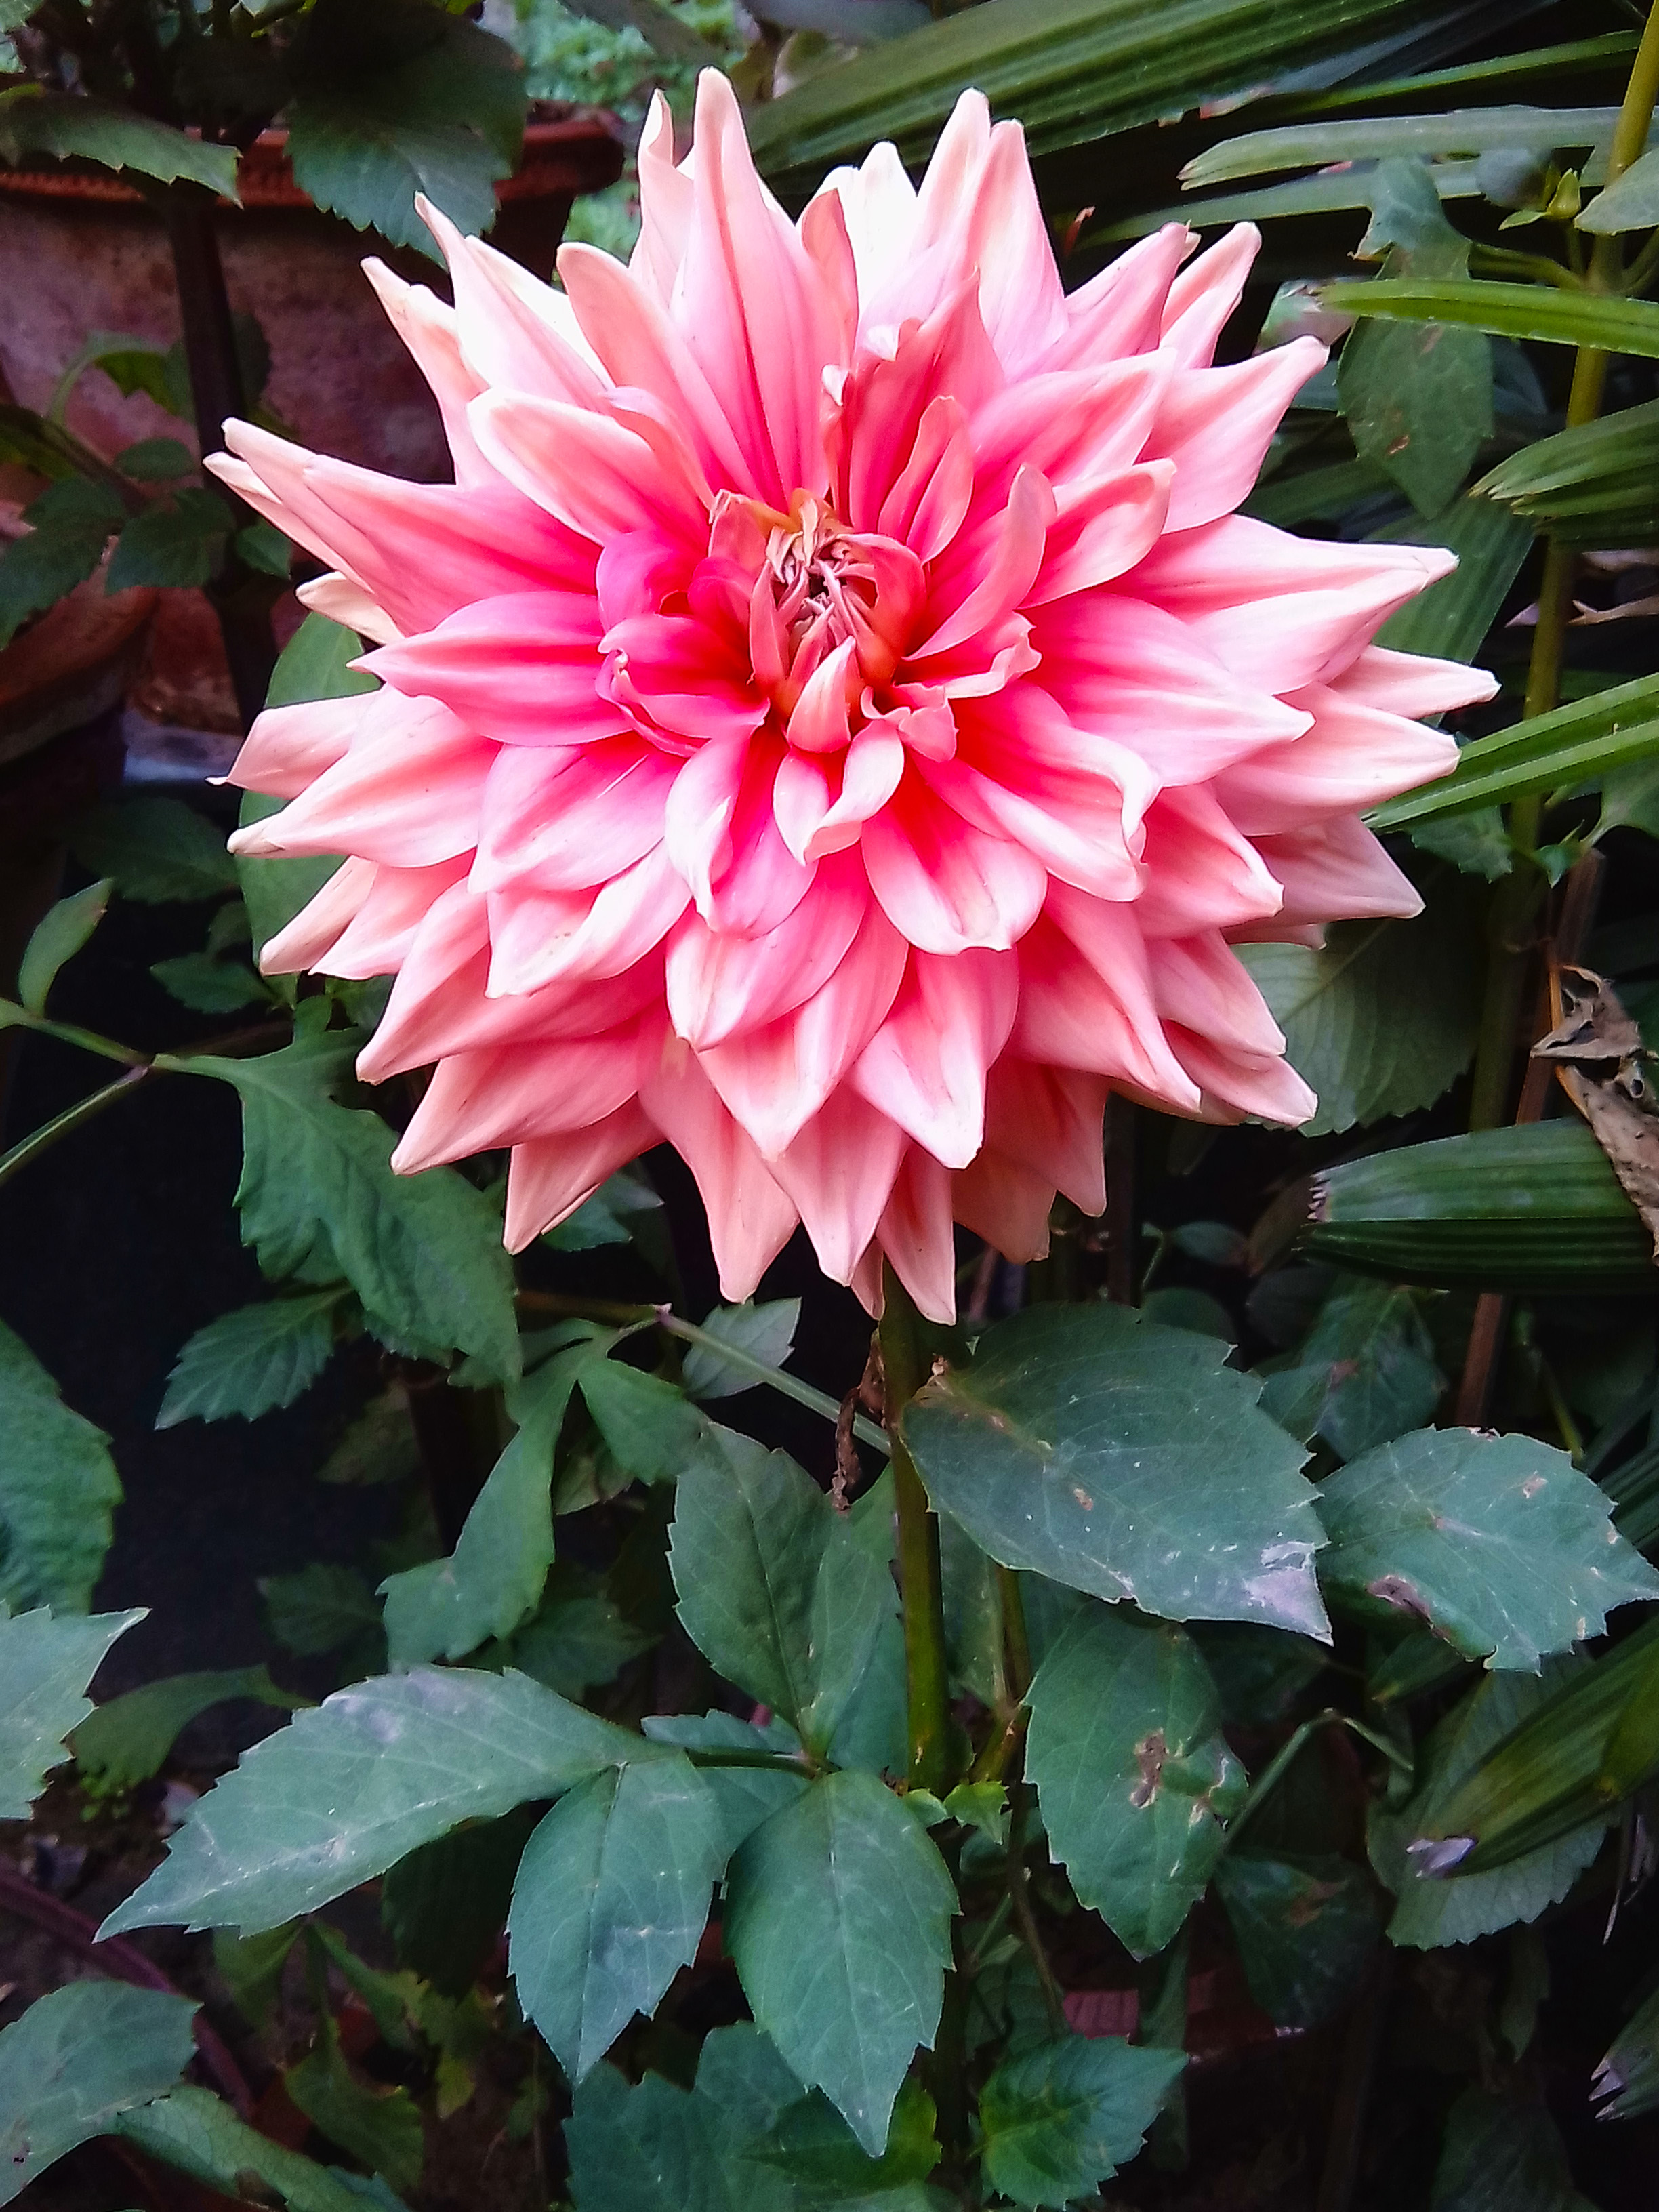 The Pink dahlia flowers information